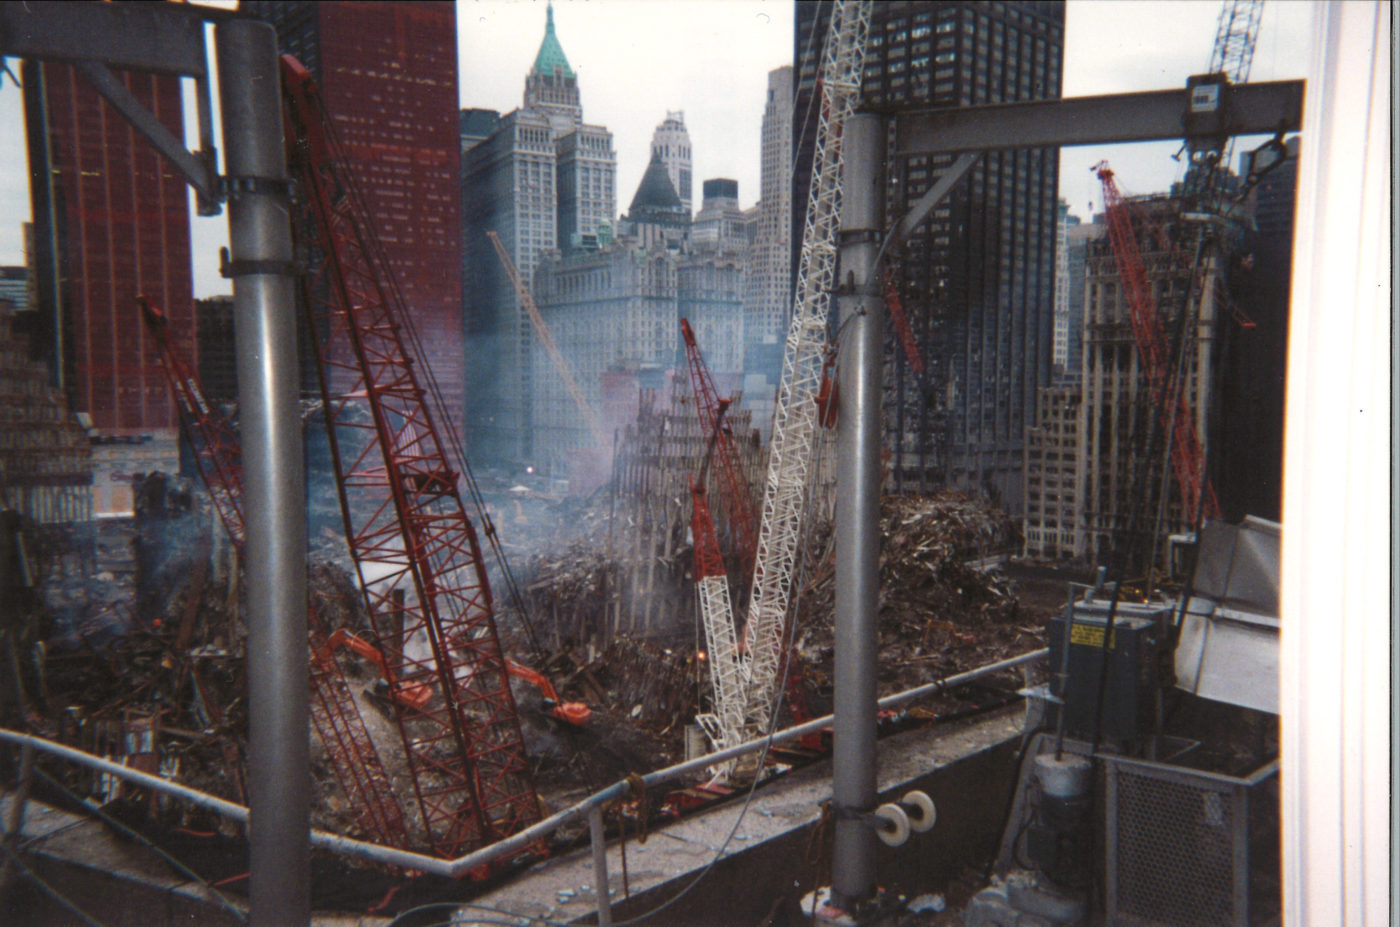 Cranes working in Rubble with Surrounding Buildings